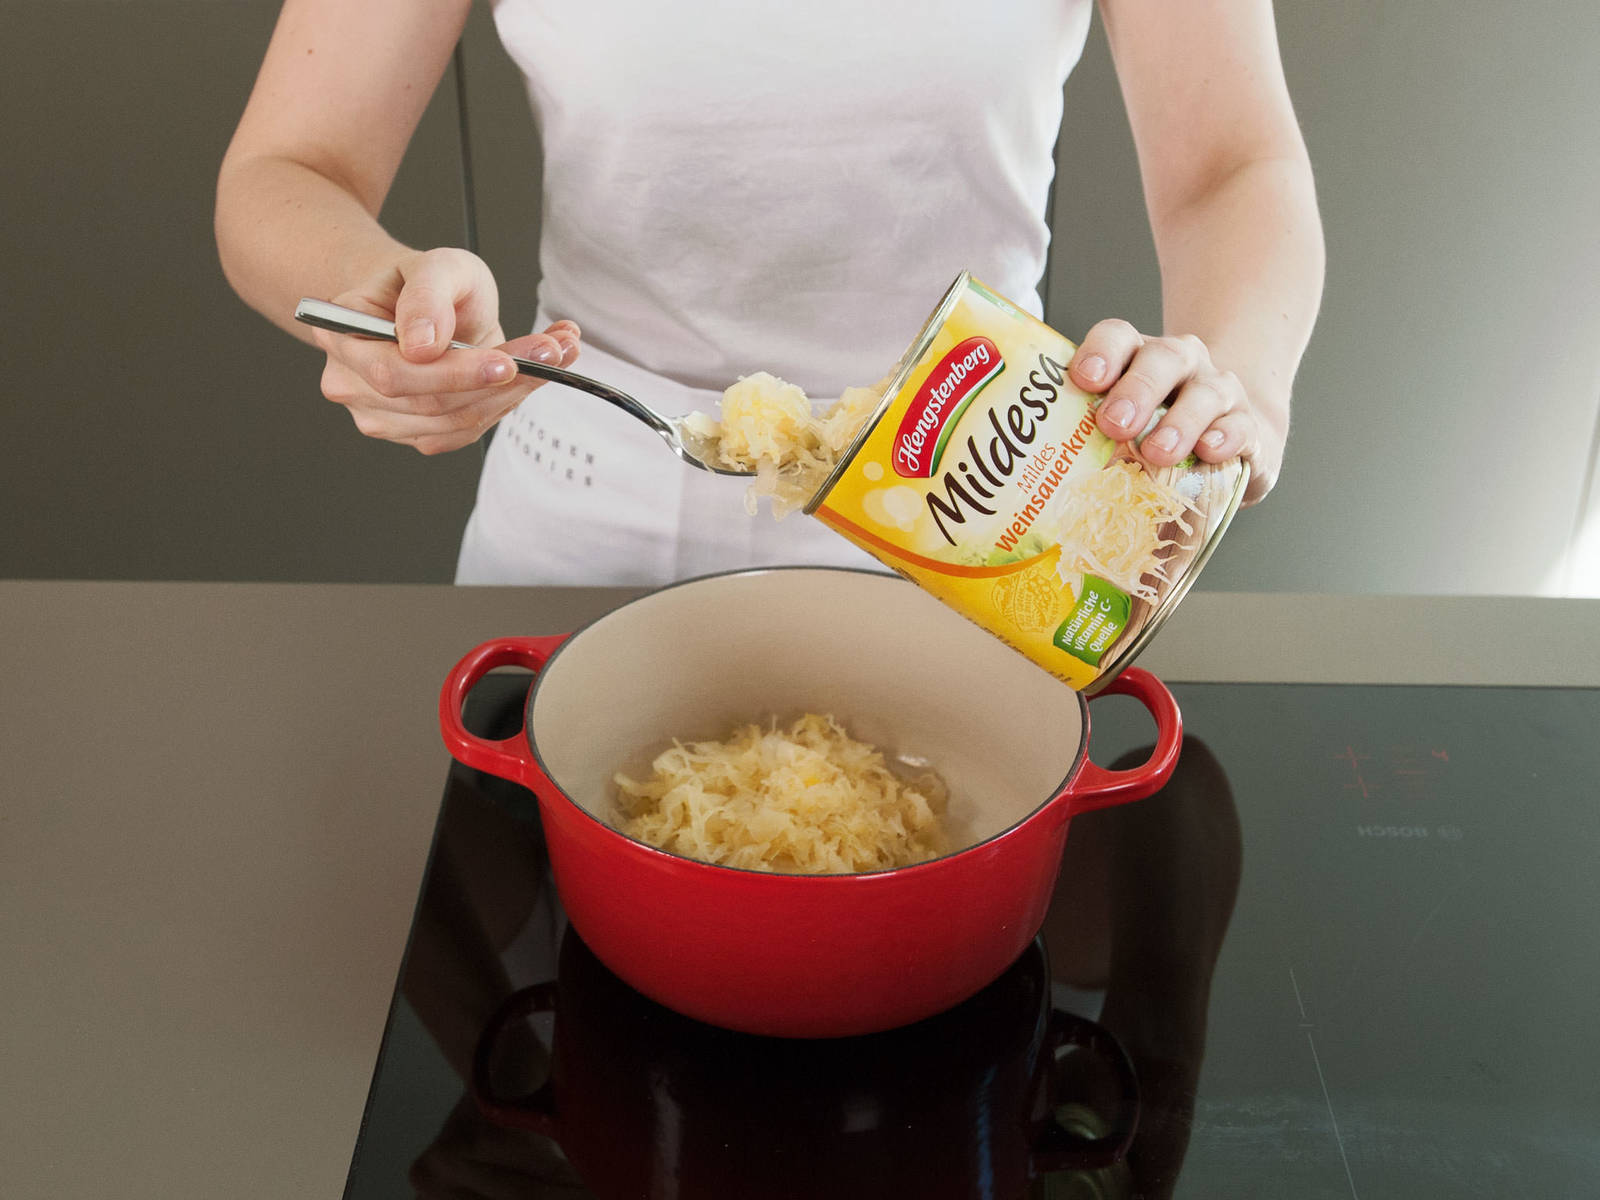 Heat up sauerkraut in a large saucepan over medium heat for approx. 5 – 10 min. Stir occasionally. Add some broth and mustard for more flavor, if desired. To serve, place rouladen on a plate and serve with sauce and sauerkraut. Enjoy!